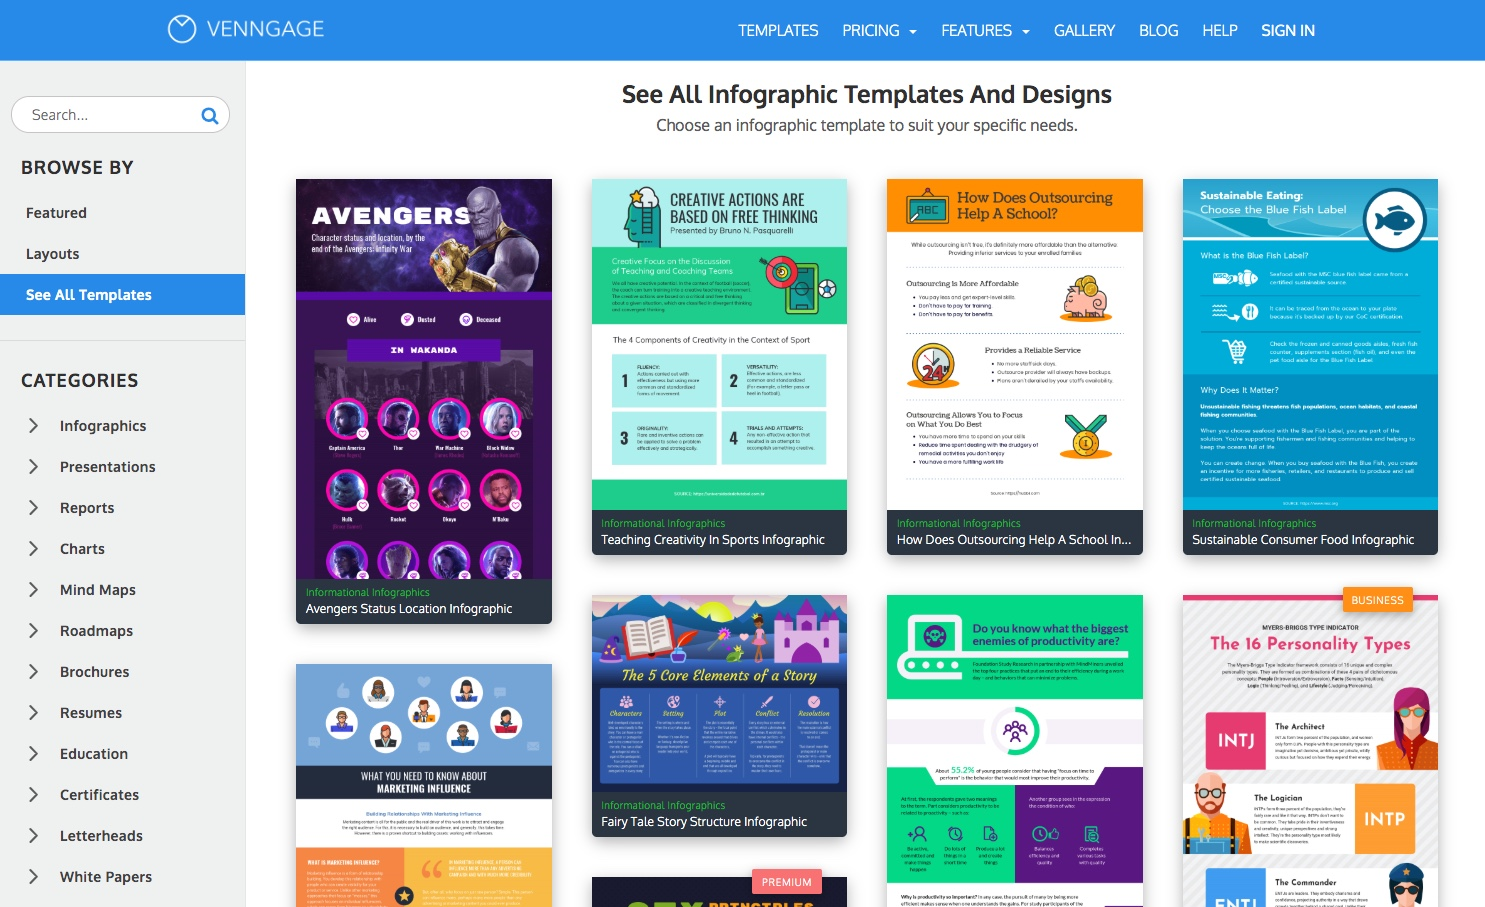 Venngage Templates Page